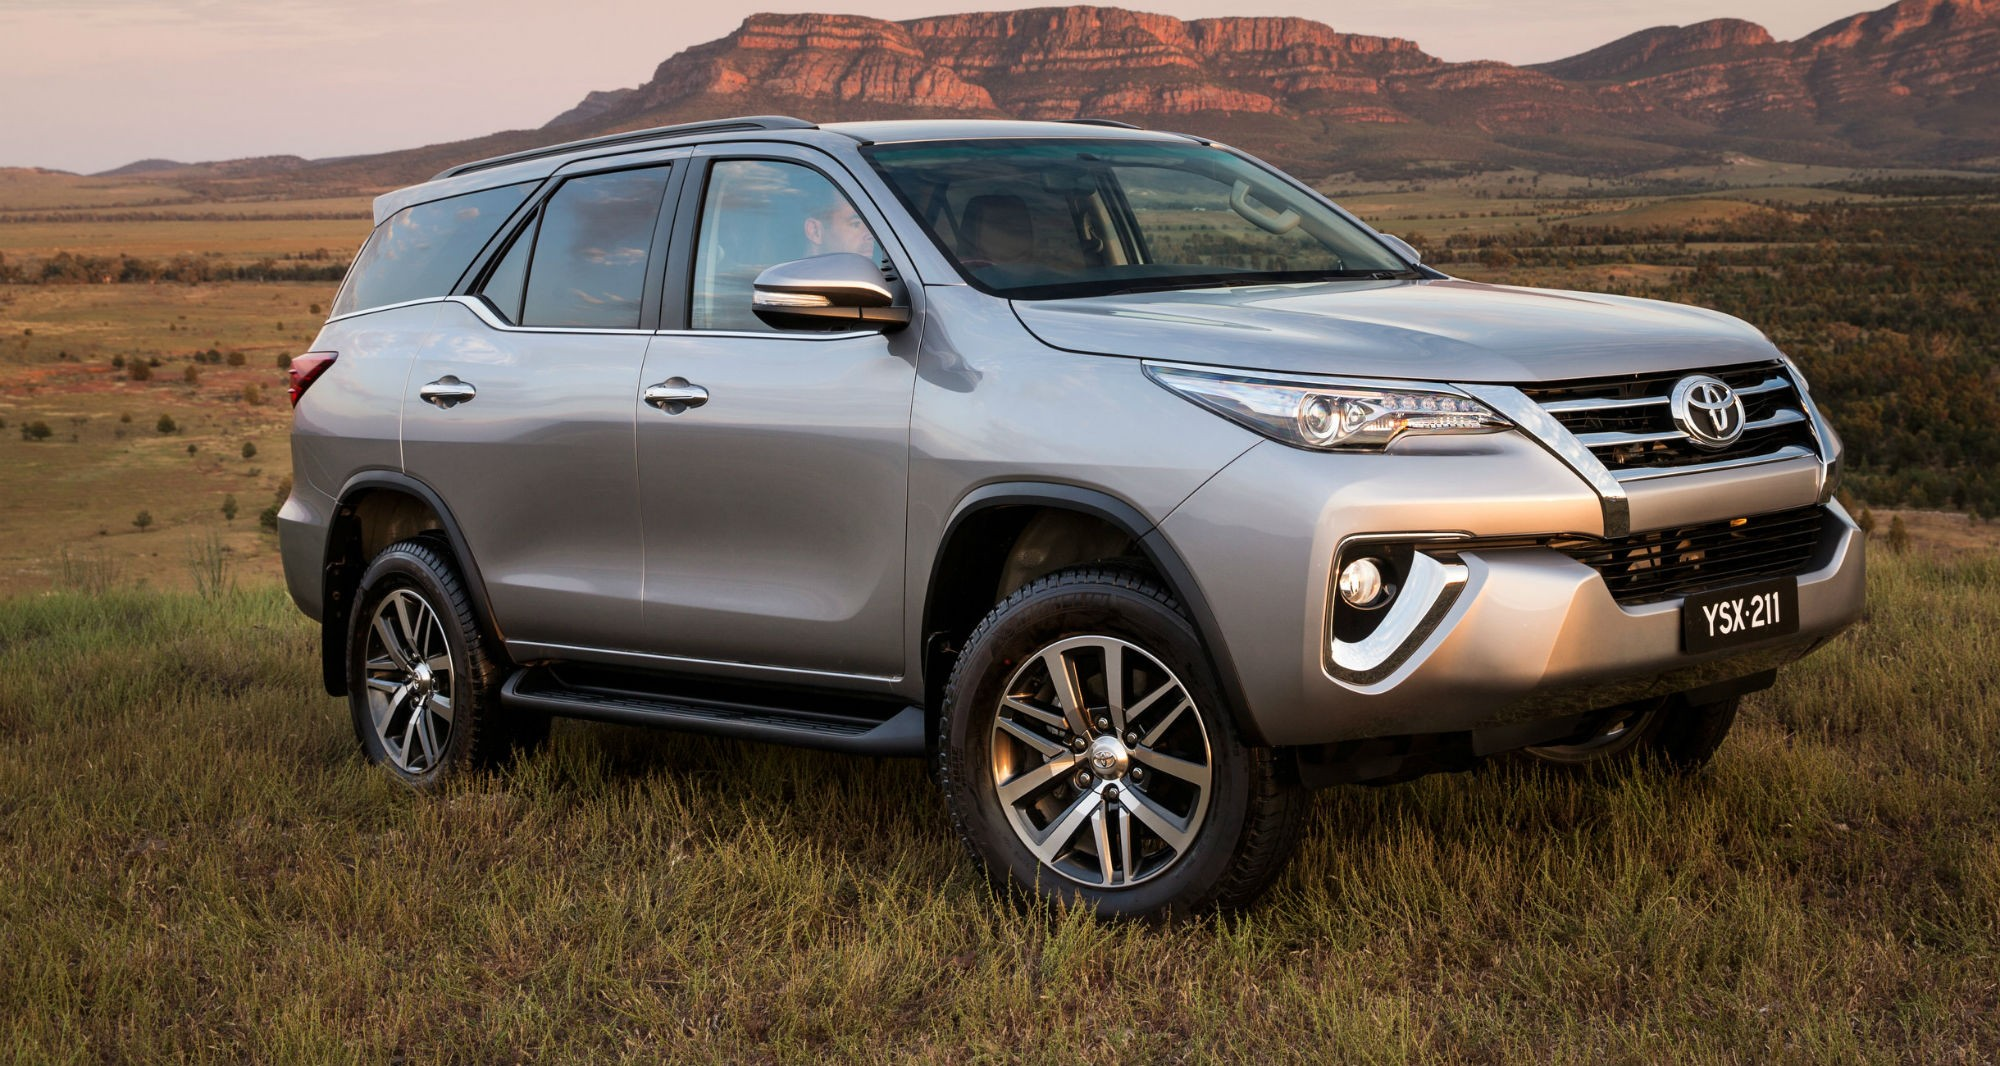 2nd Generation Toyota Fortuner Is Coming Soon To Pakistan